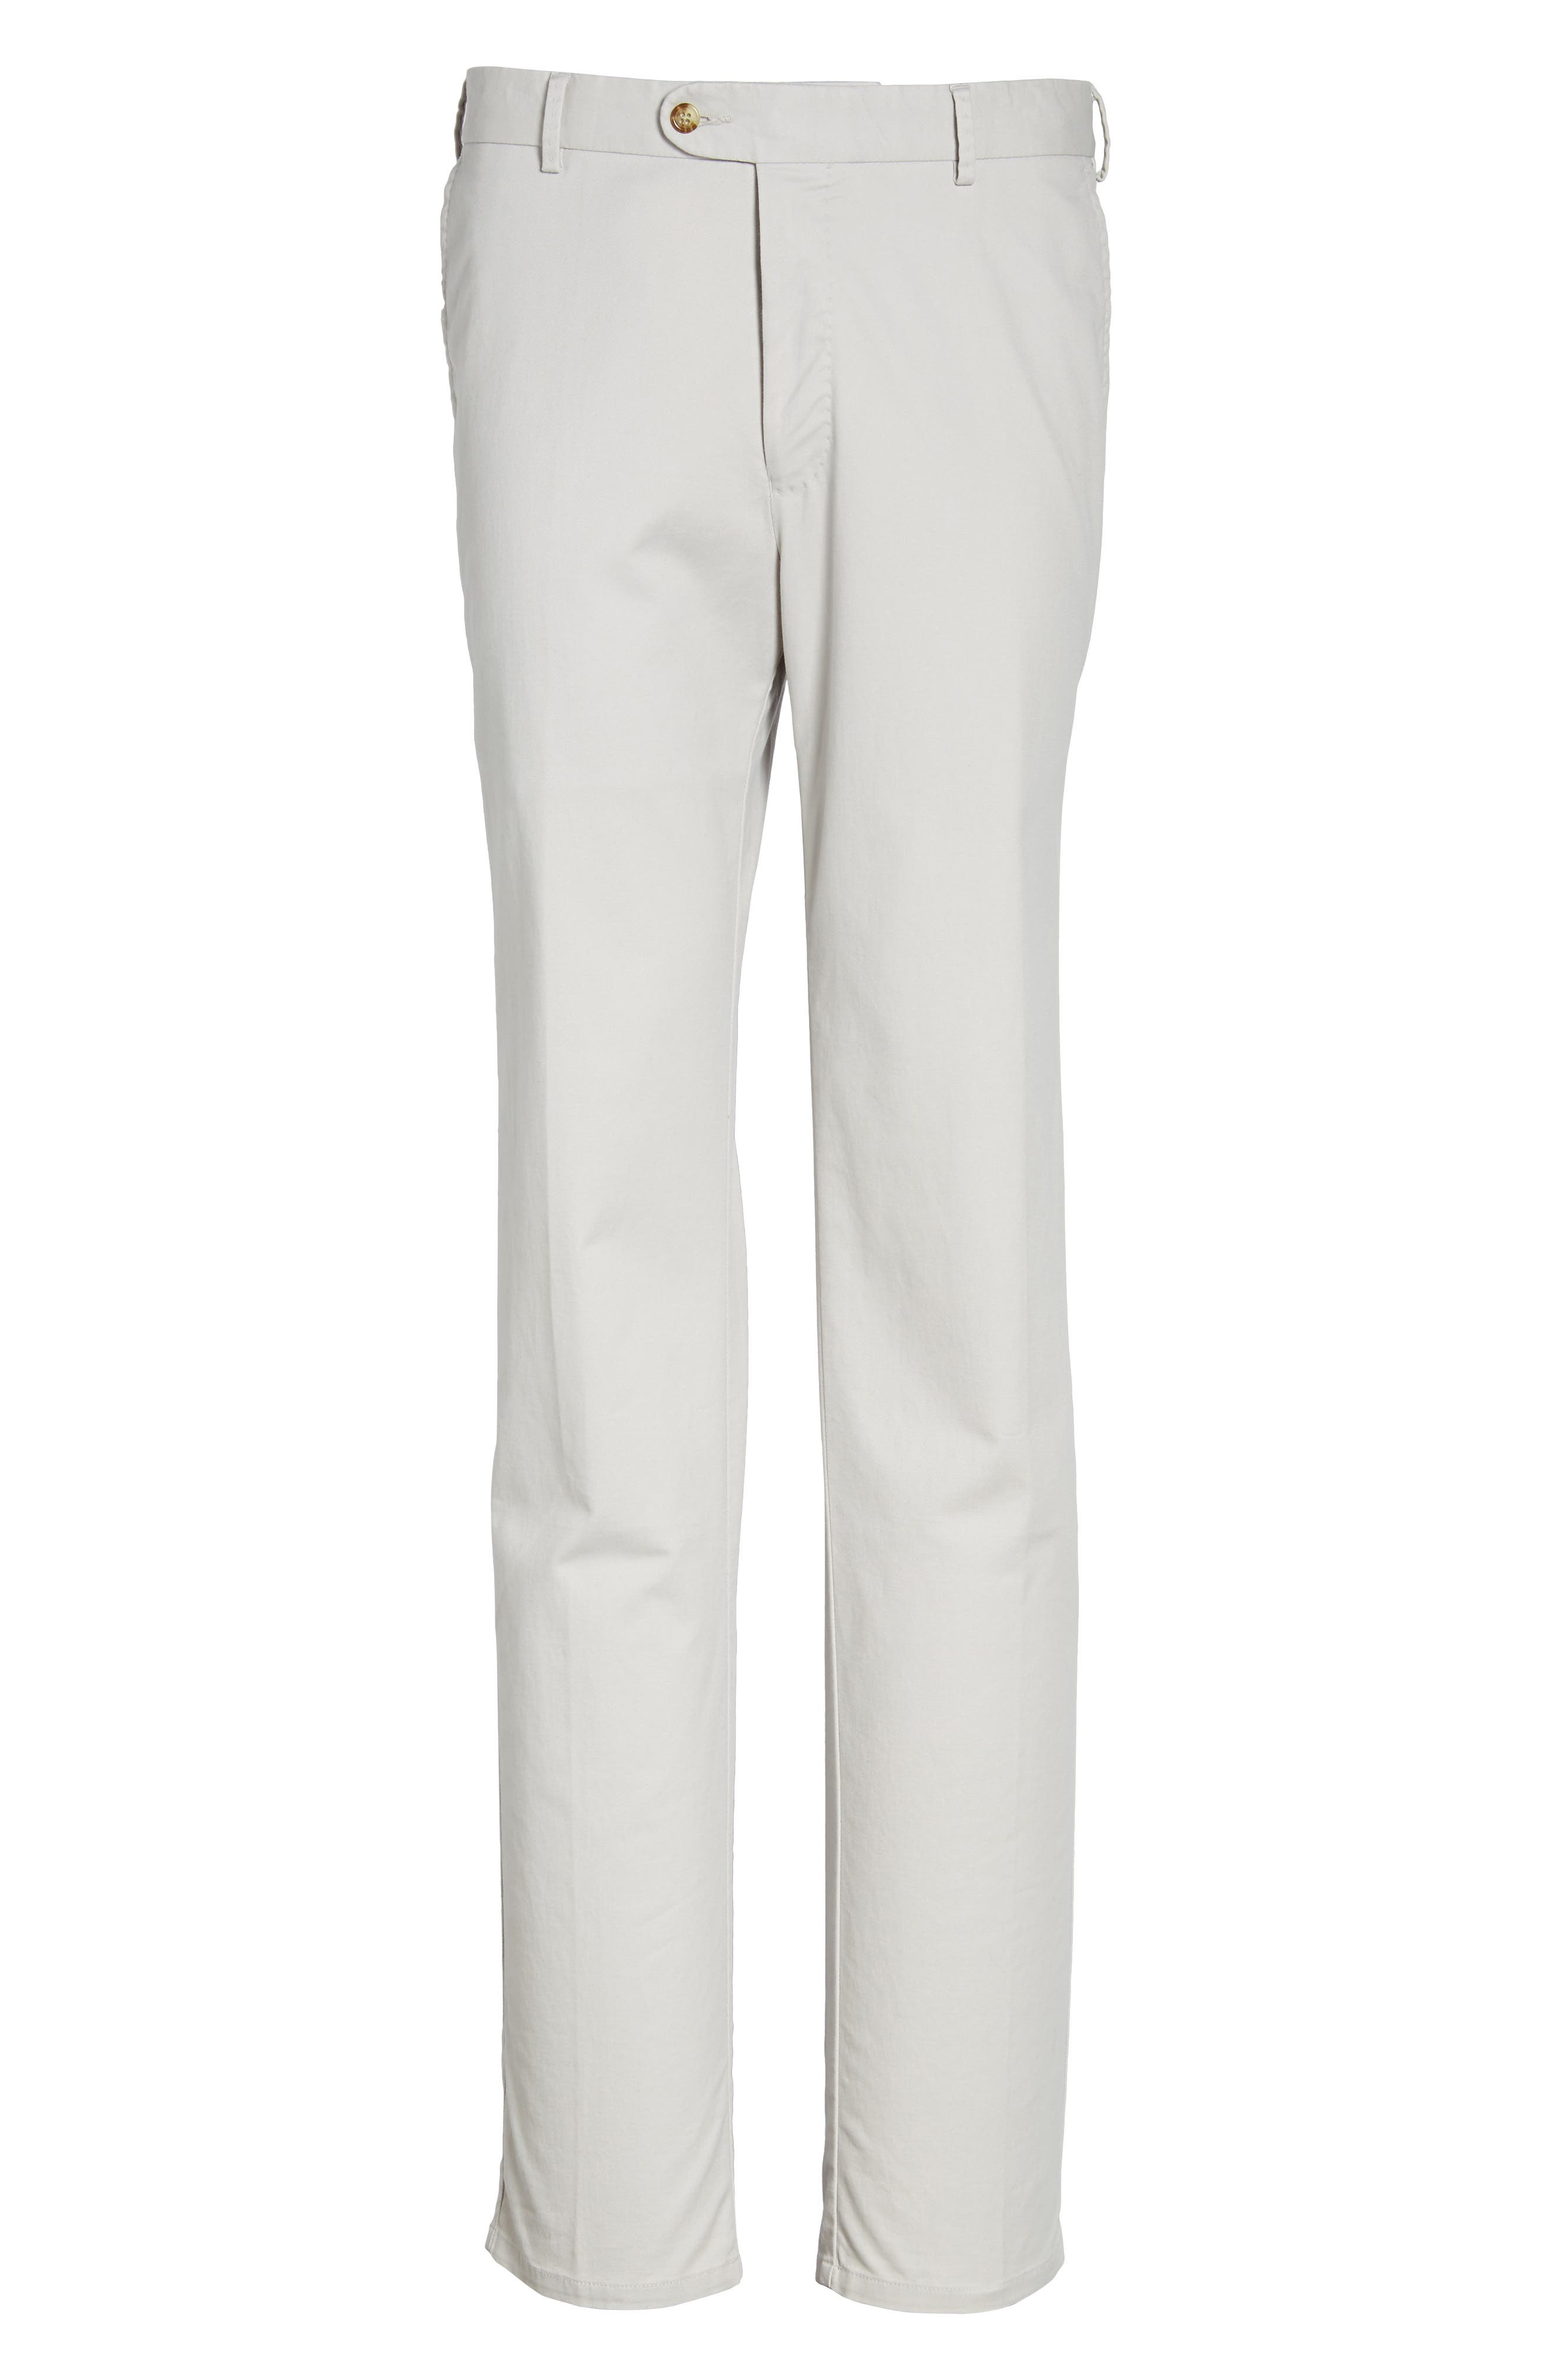 Twill Pants,                             Alternate thumbnail 6, color,                             LIGHT GREY